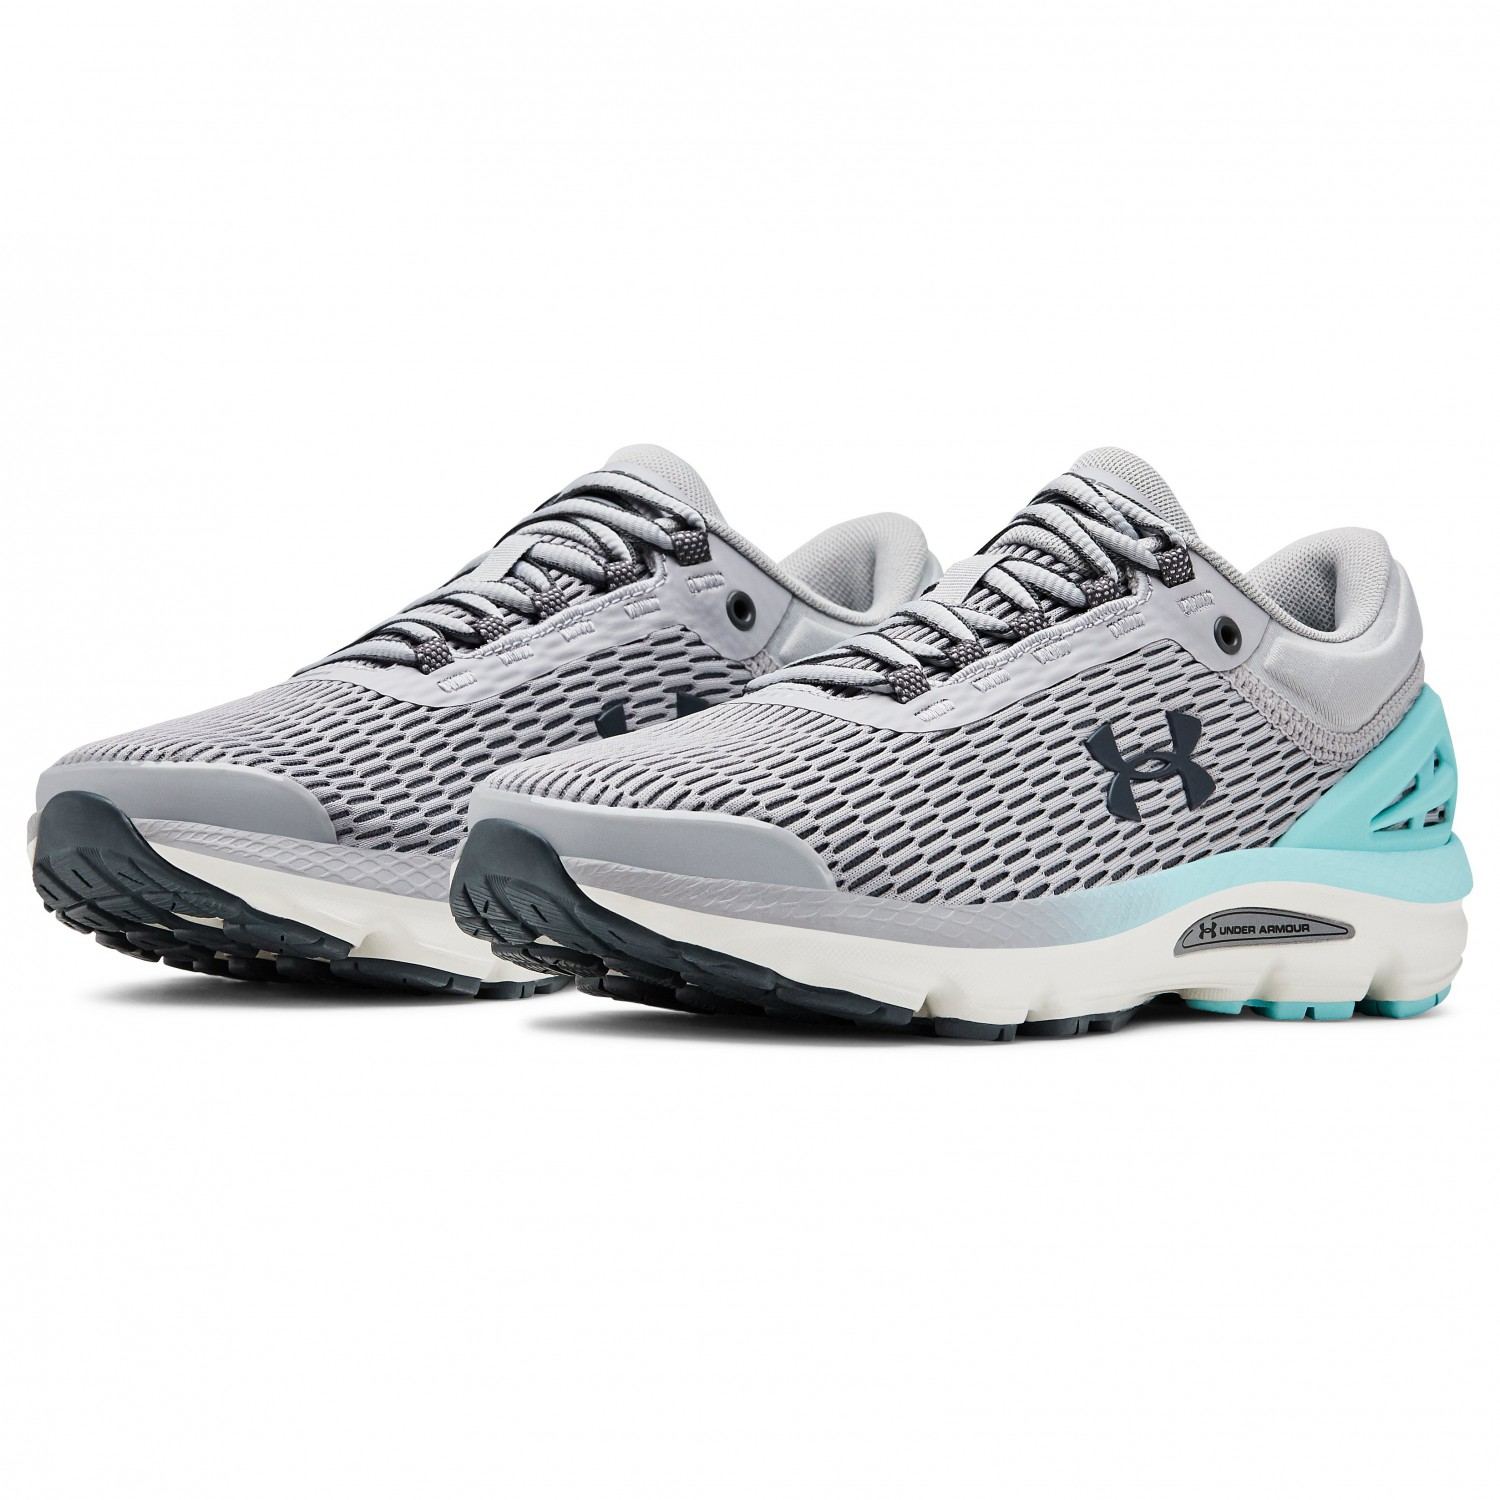 Under Armour Women's Charged Intake 3 Chaussures de running Mod Gray | 6,5 (US)